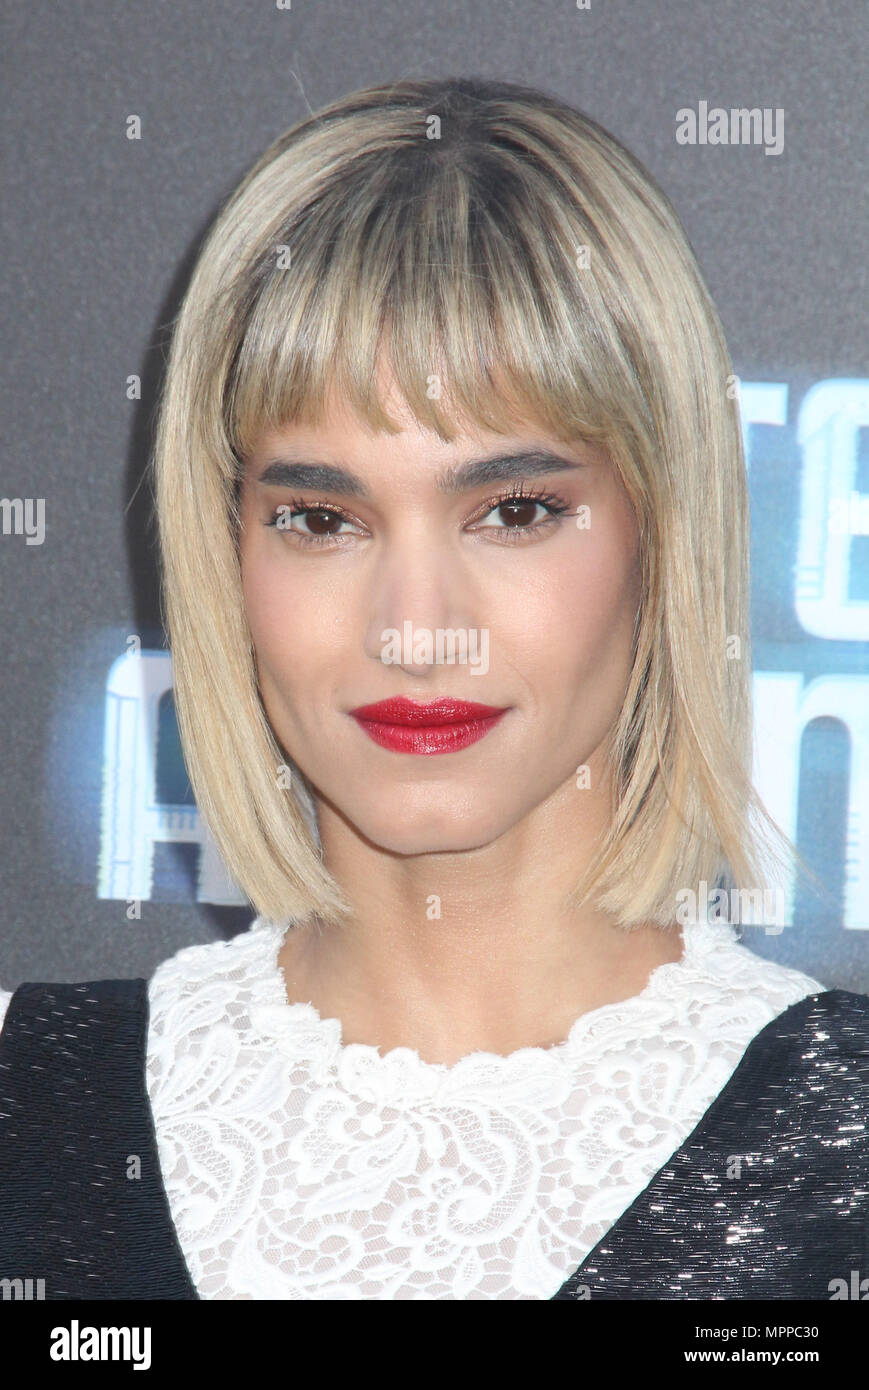 Sofia Boutella 05 19 2018 The Los Angeles Premiere Of Hotel Artemis Held At Regency Bruin Theatre In CA Photo Cronos Hollywood News